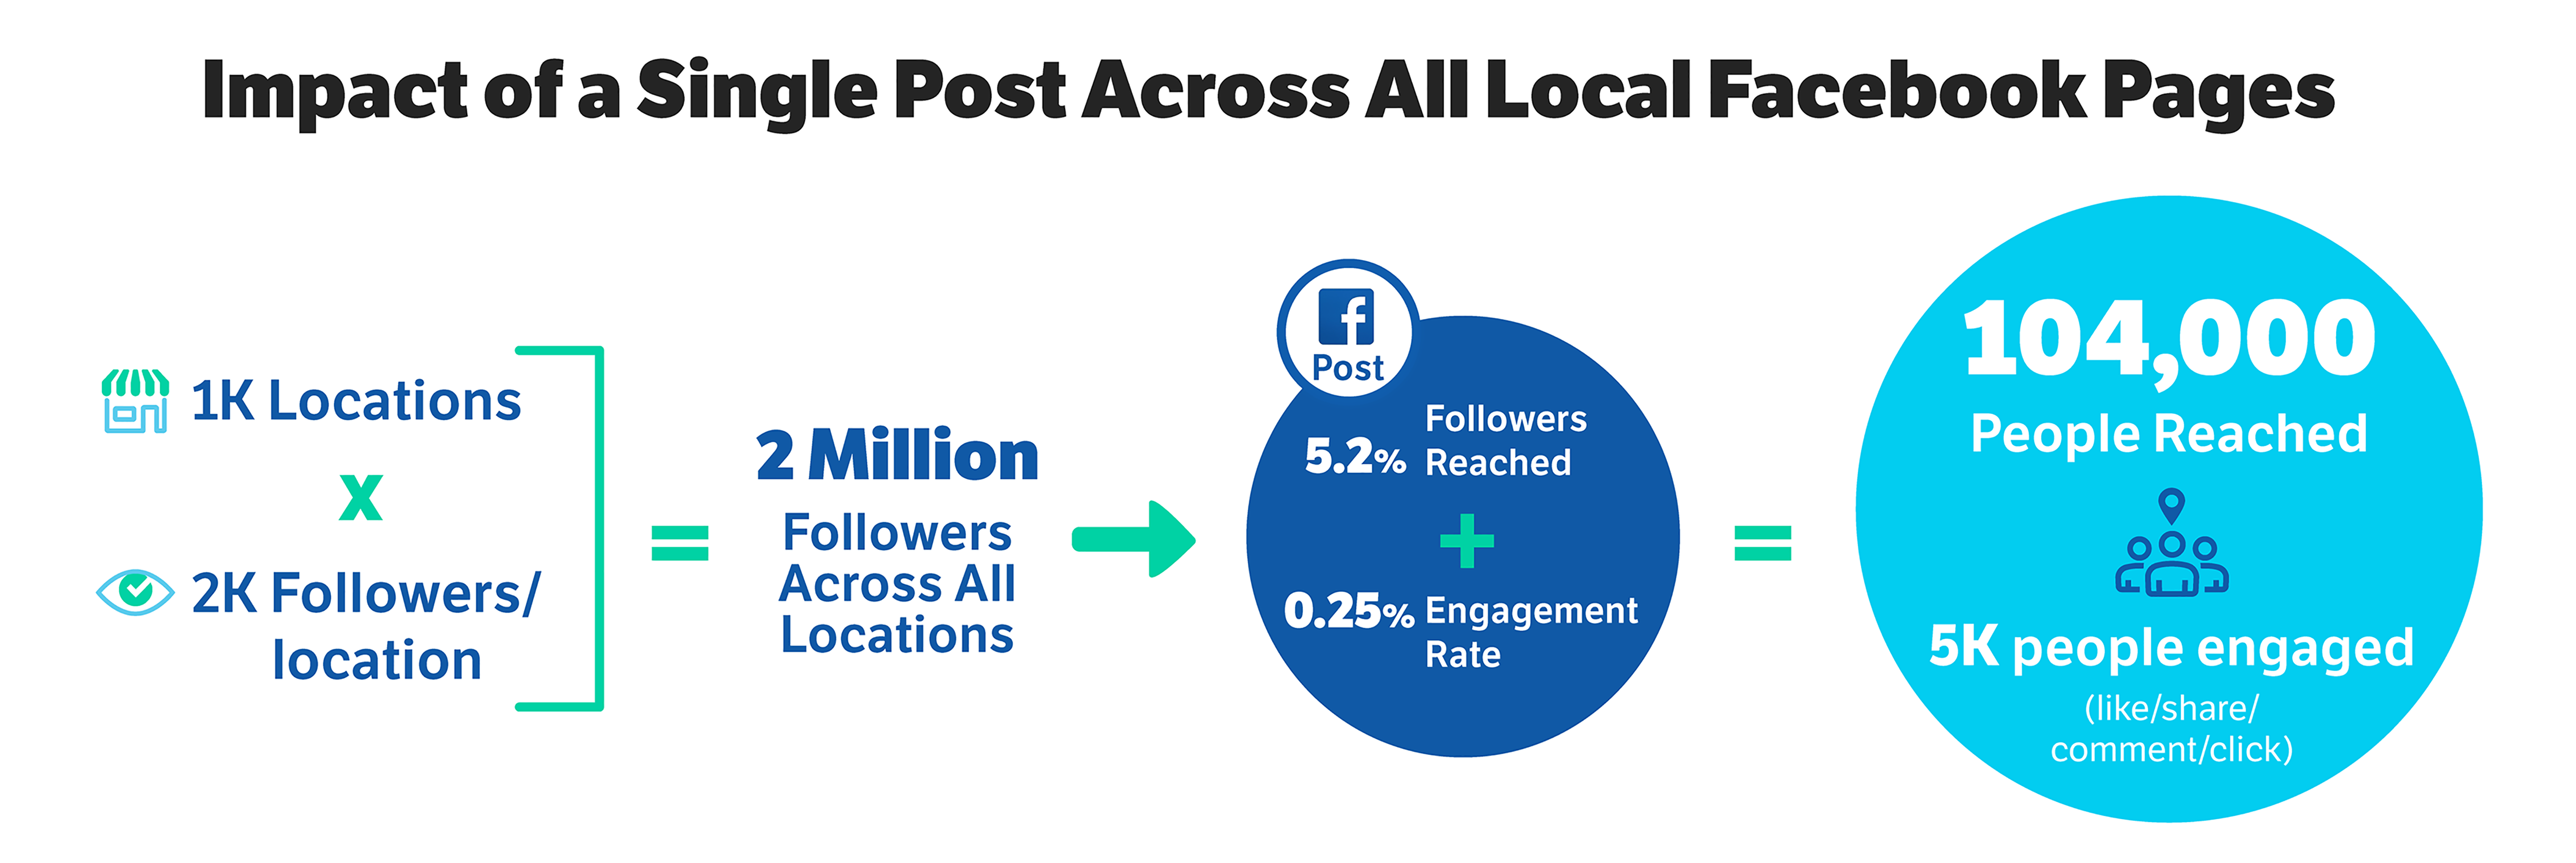 Impact of single post across all local Facebook pages